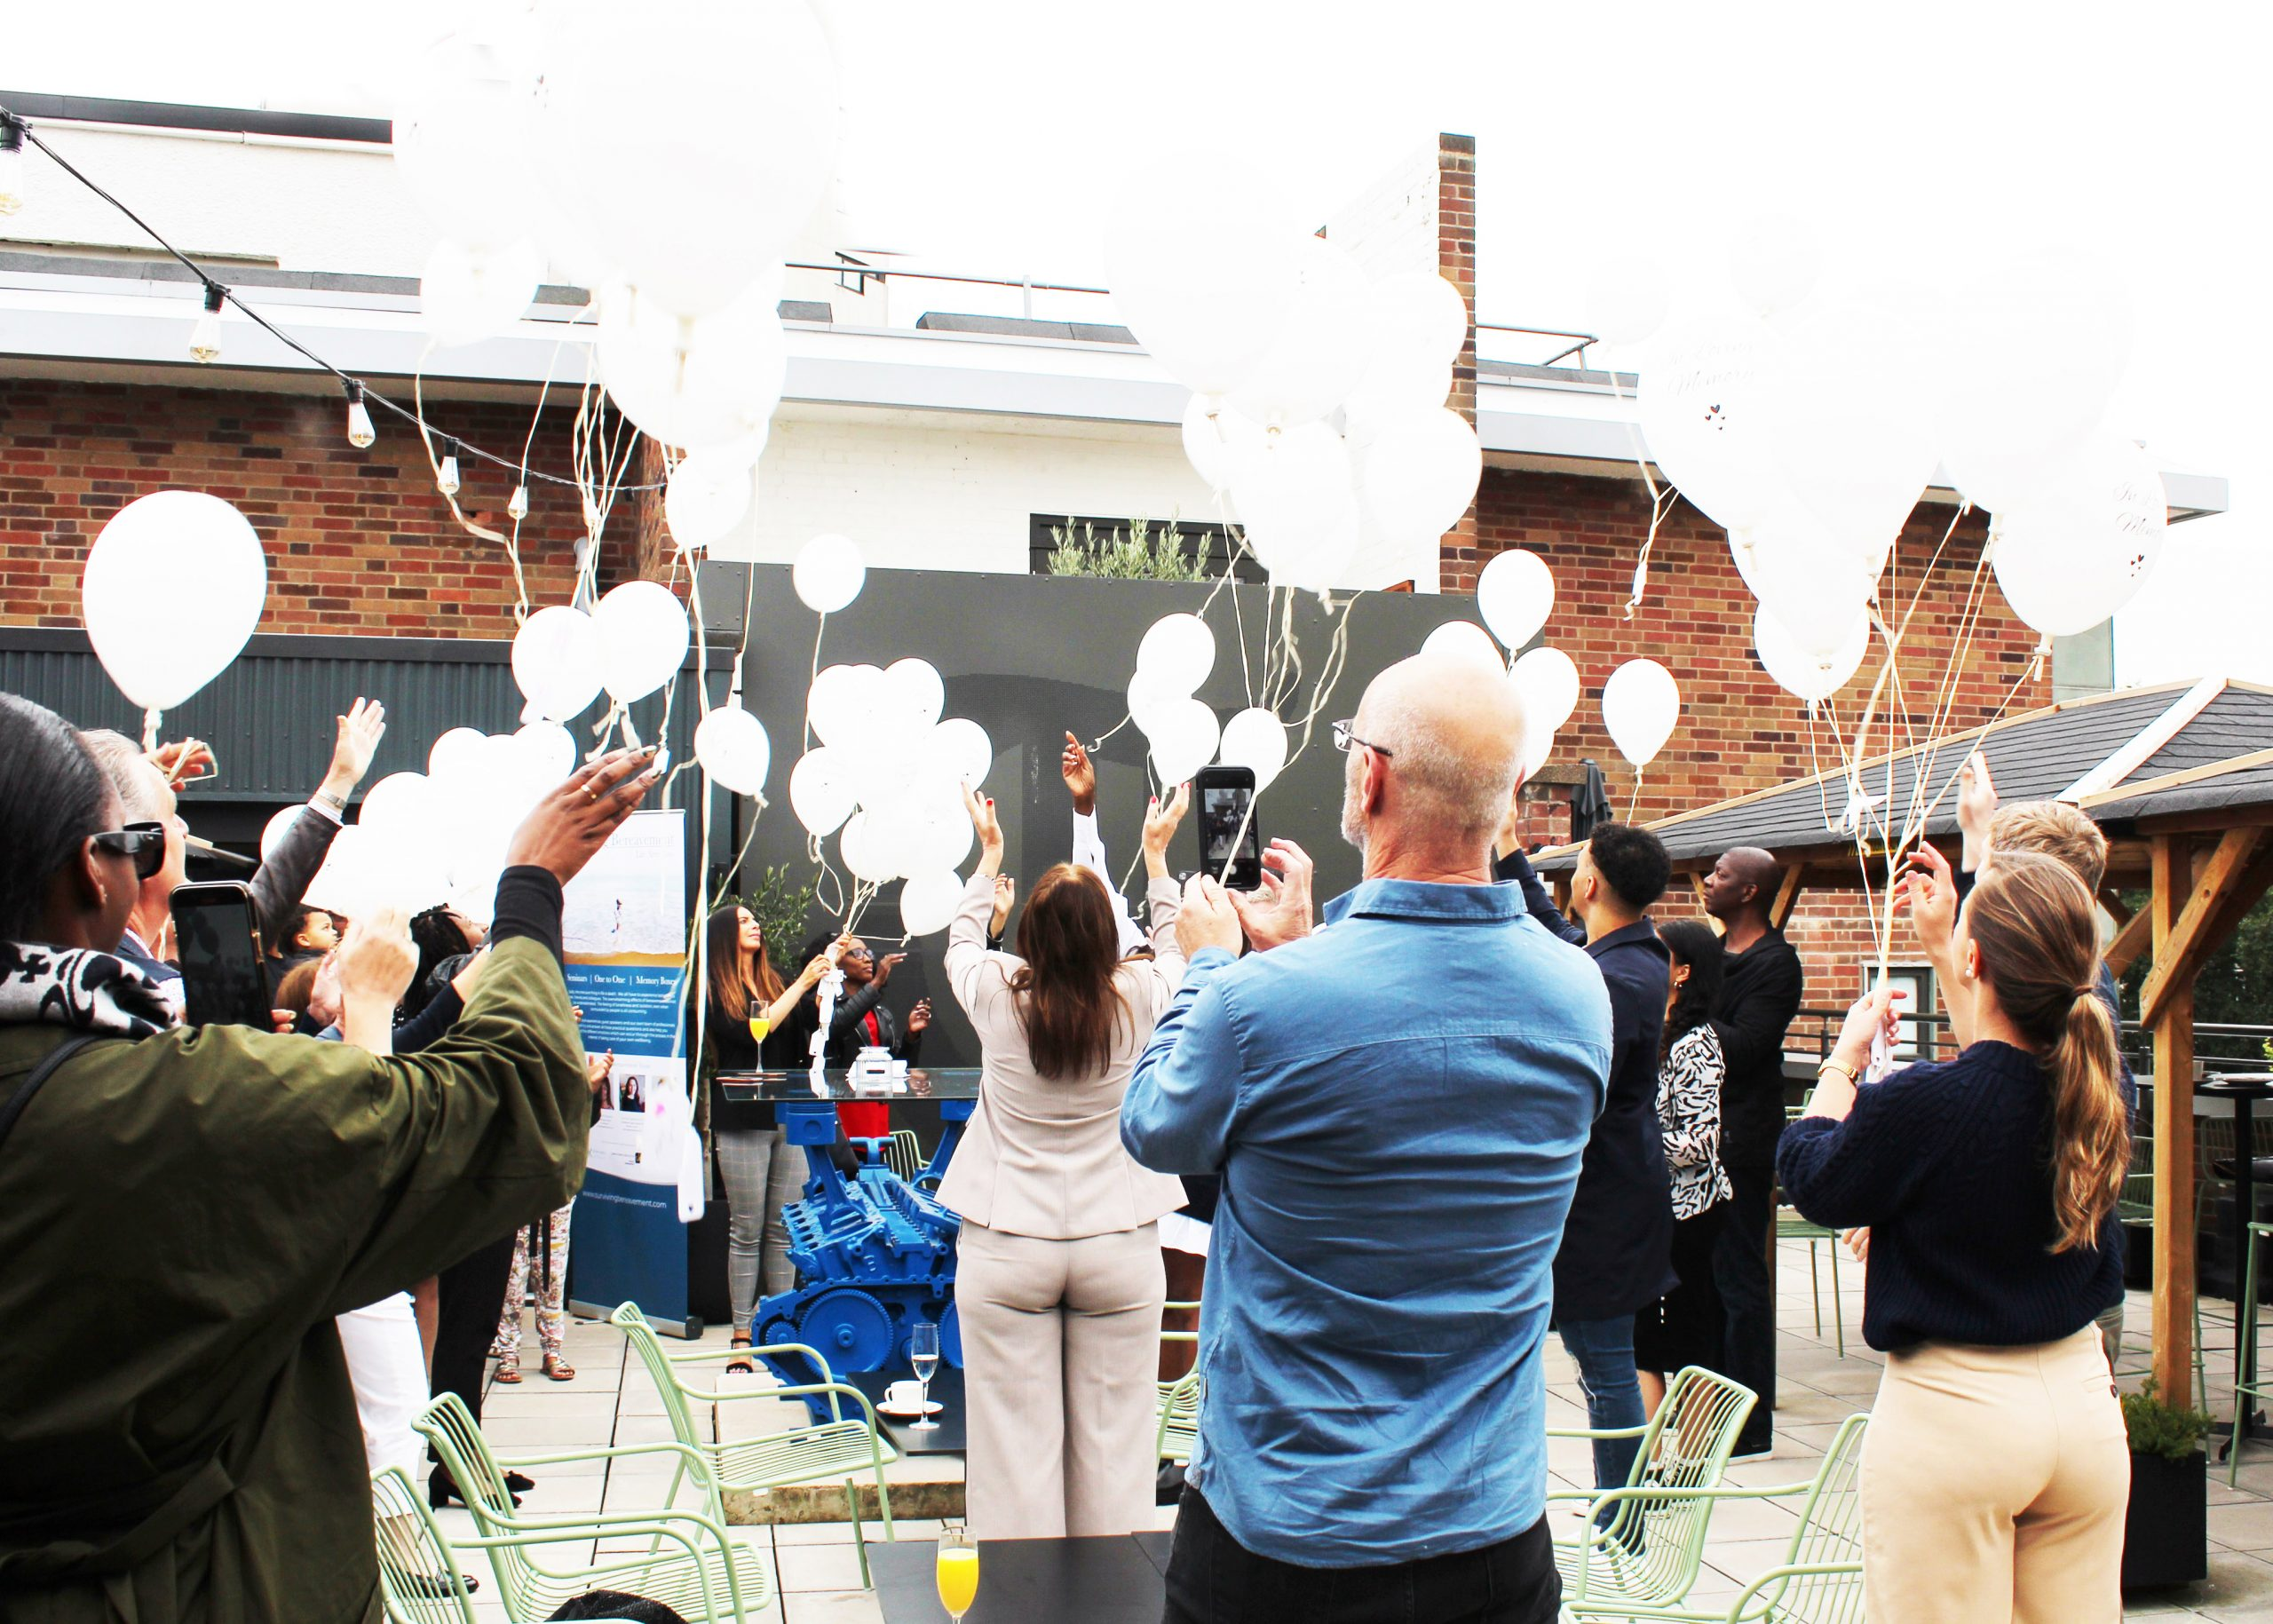 My Darling, Sandra Godley, Surviving Bereavement, Molly Olly's Wishes, Coventry & Warwickshire MIND, balloons release